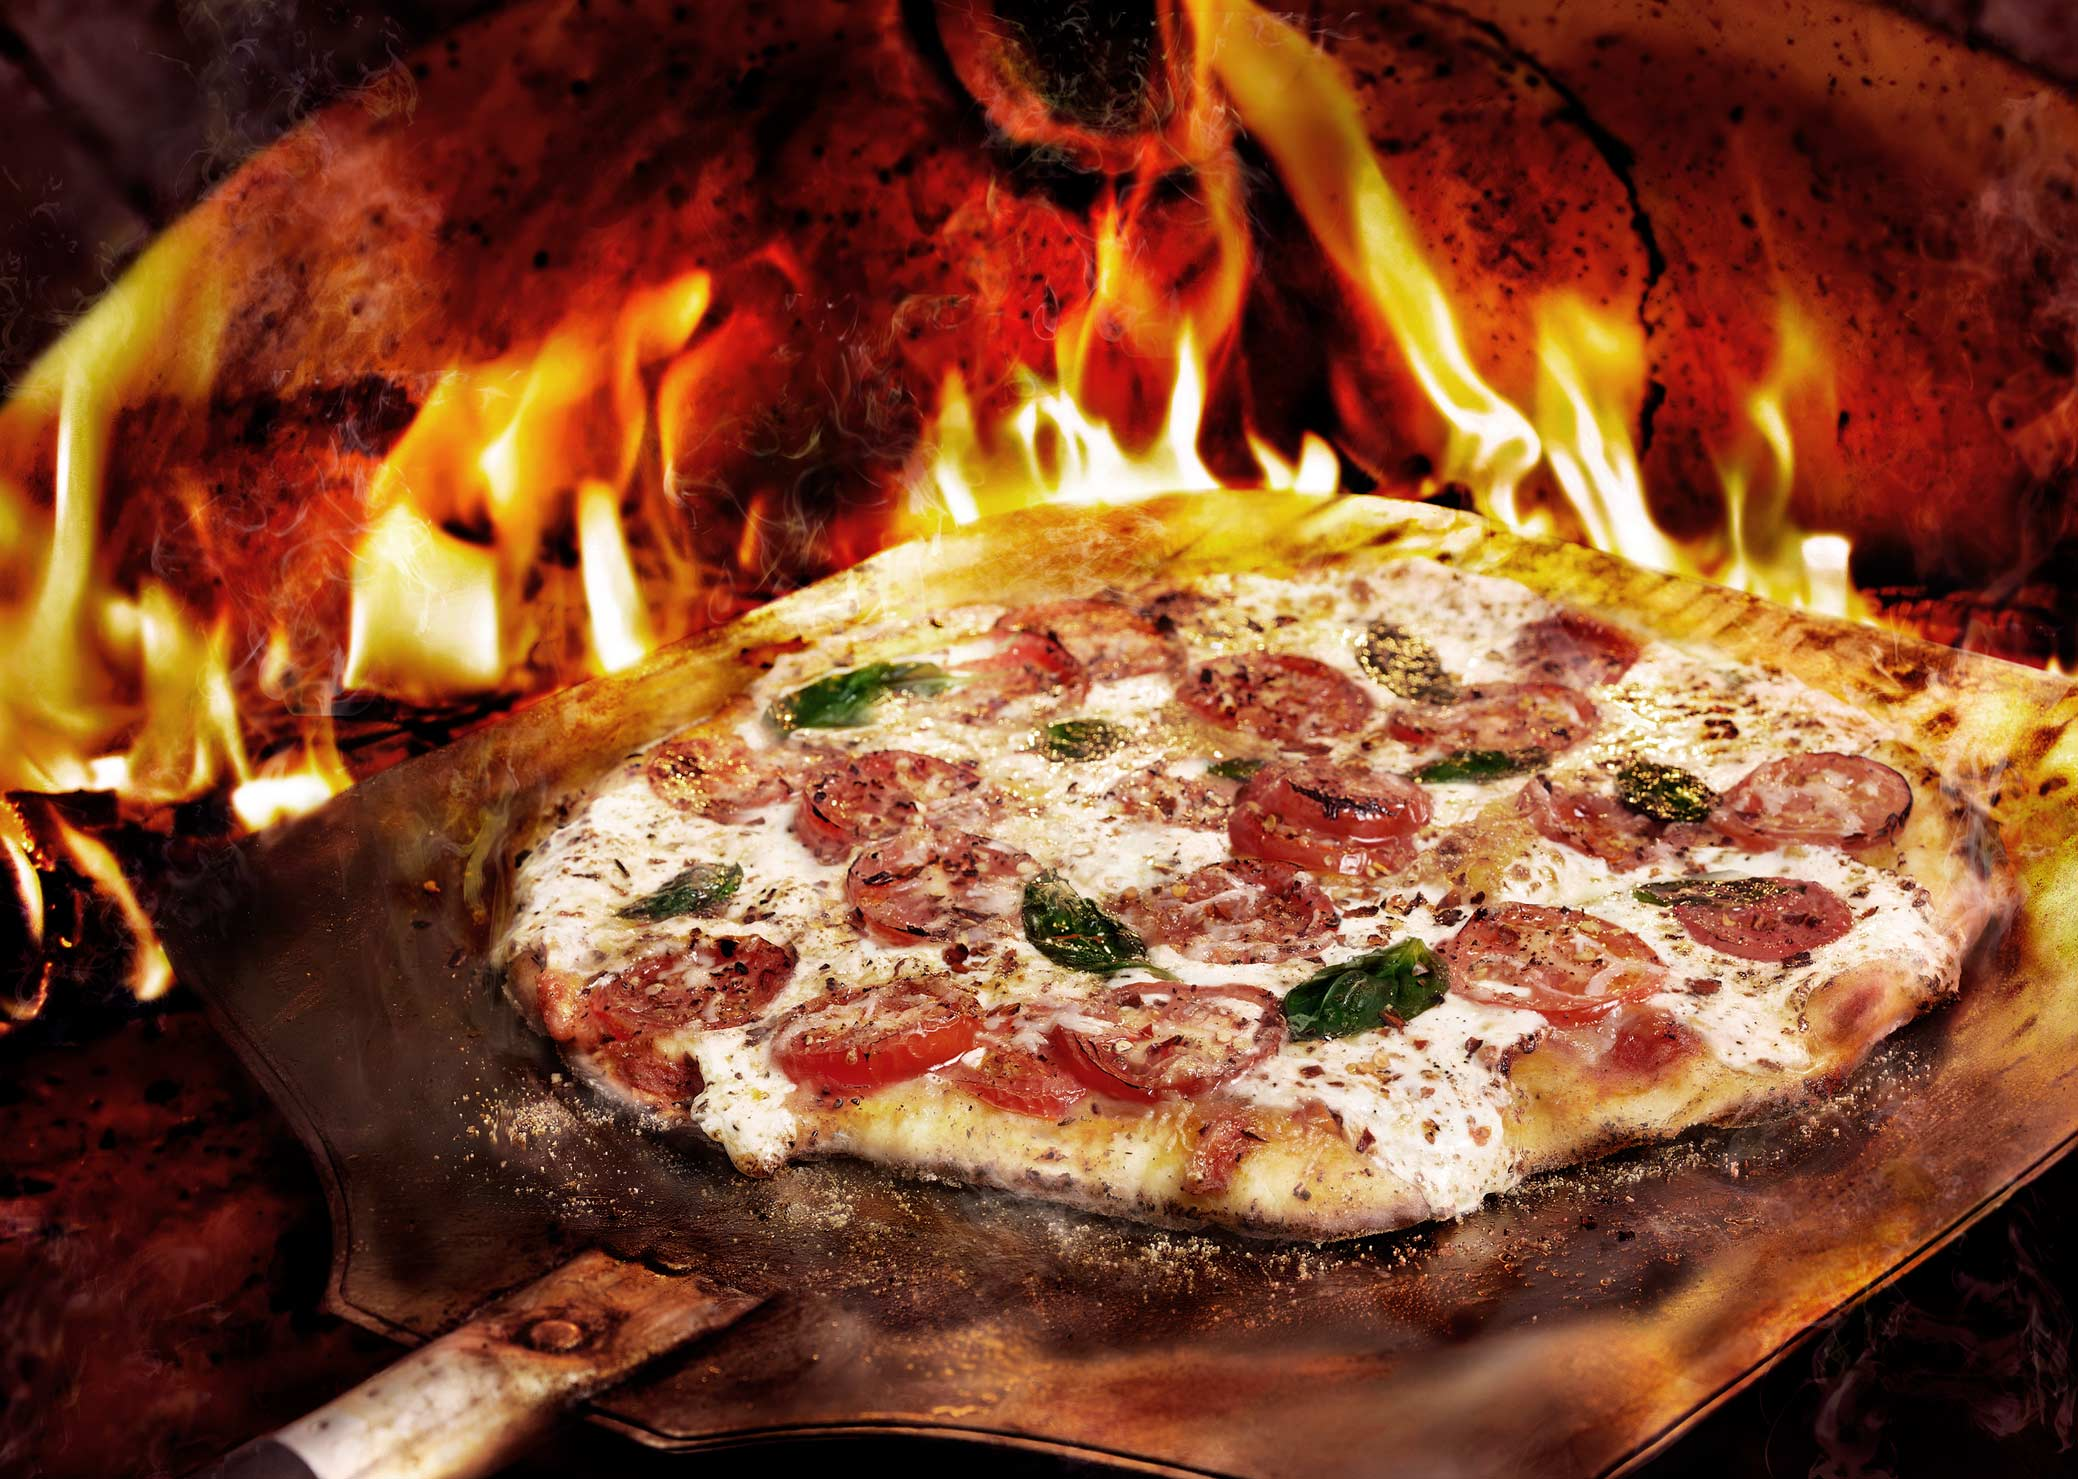 Pizza Margherita in wood-fired oven with flames